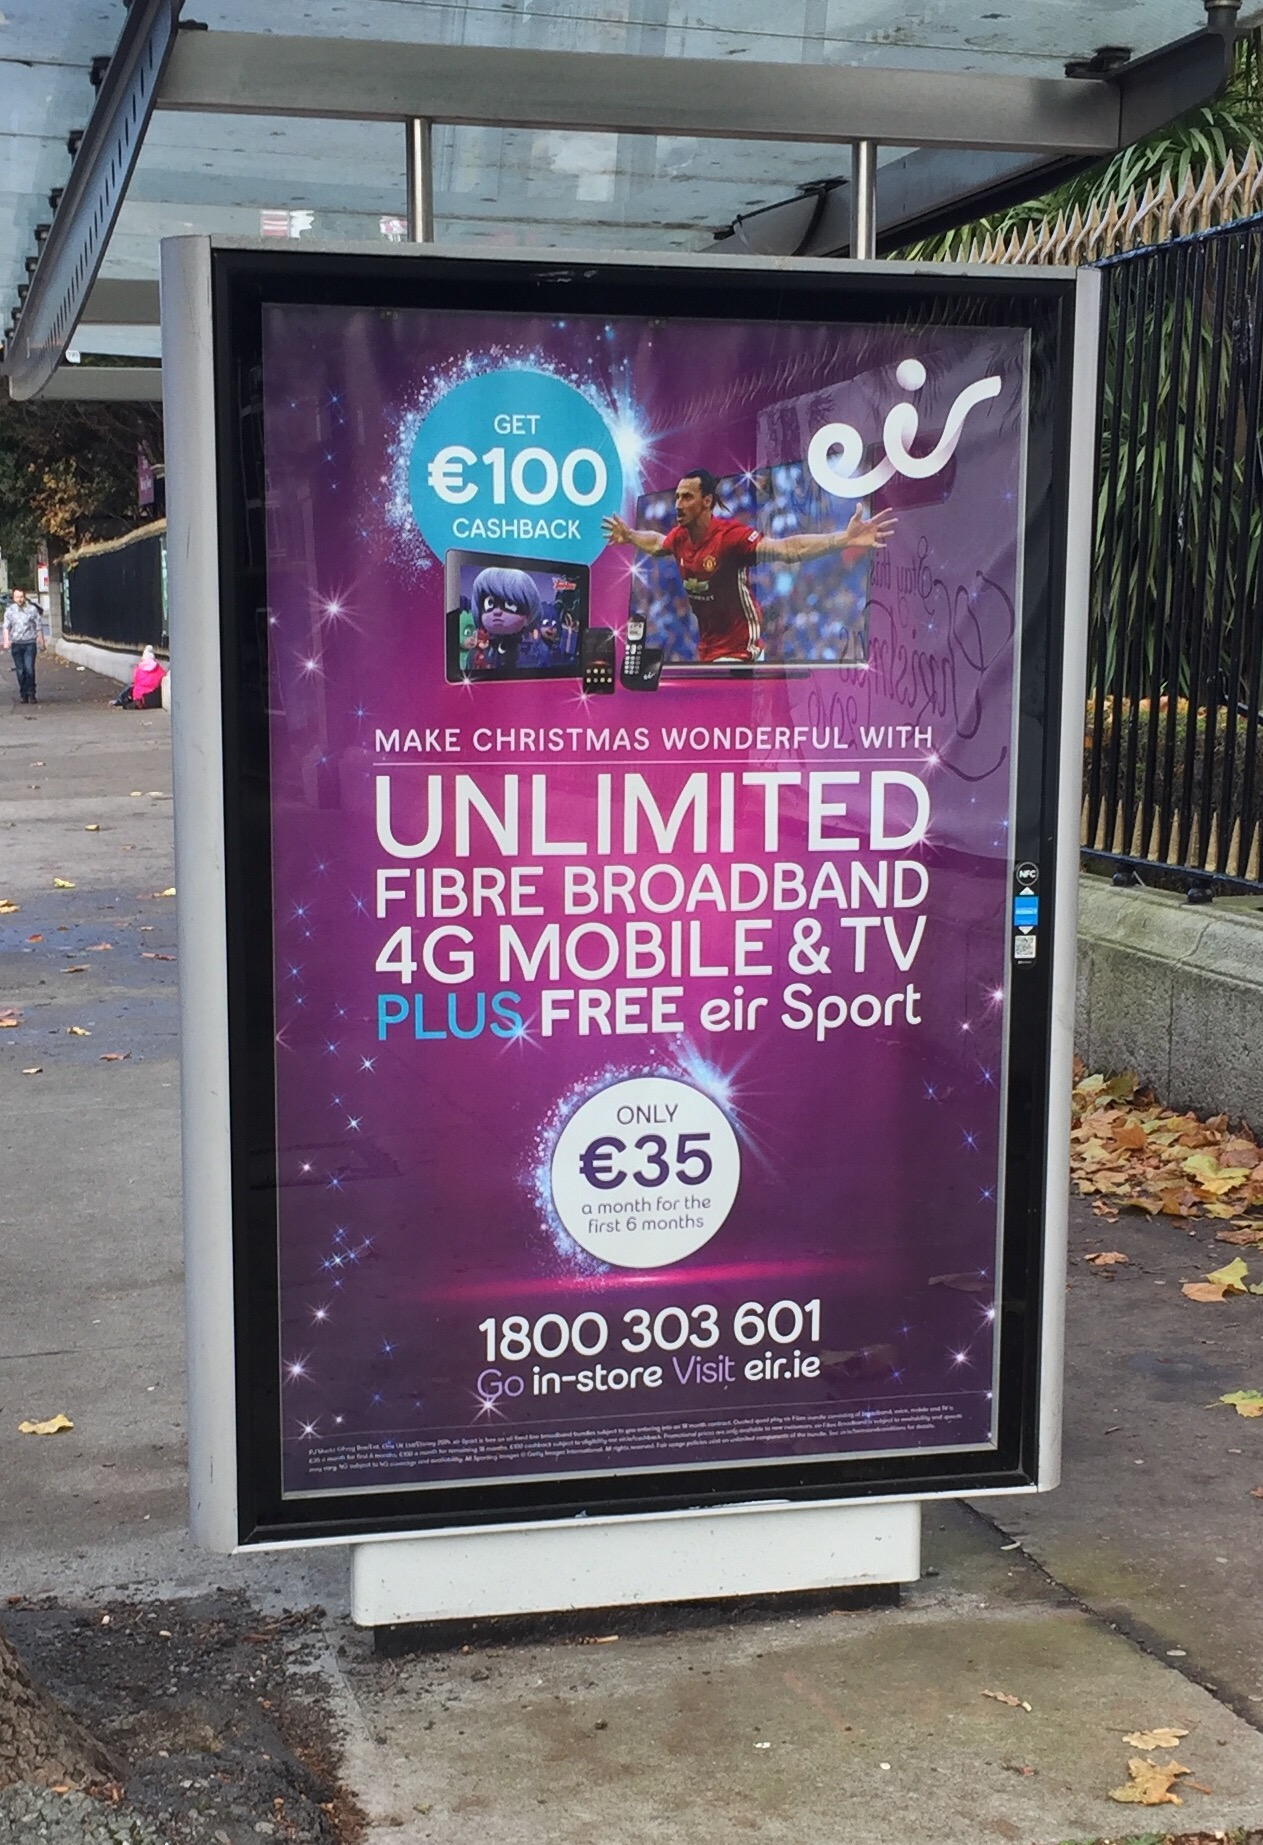 Eir – make Christmas wonderful with unlimited fibre broadband 4g mobile & tv plus free eir sport